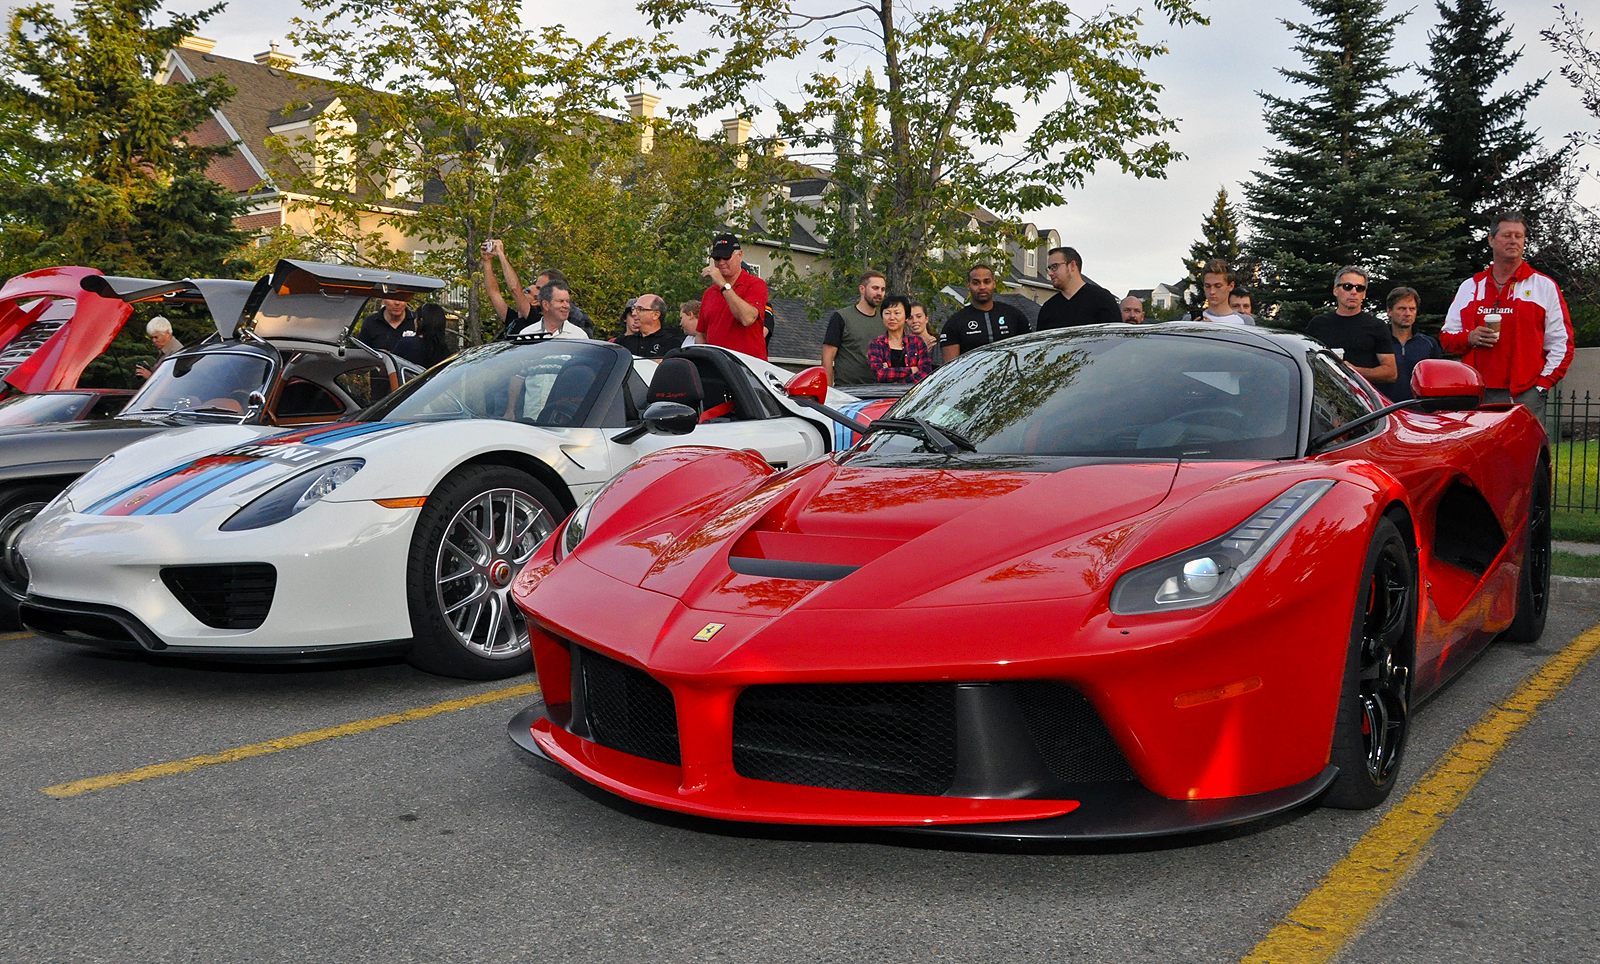 Laferrari 918 Spyder Weissach And More At Calgary Euro